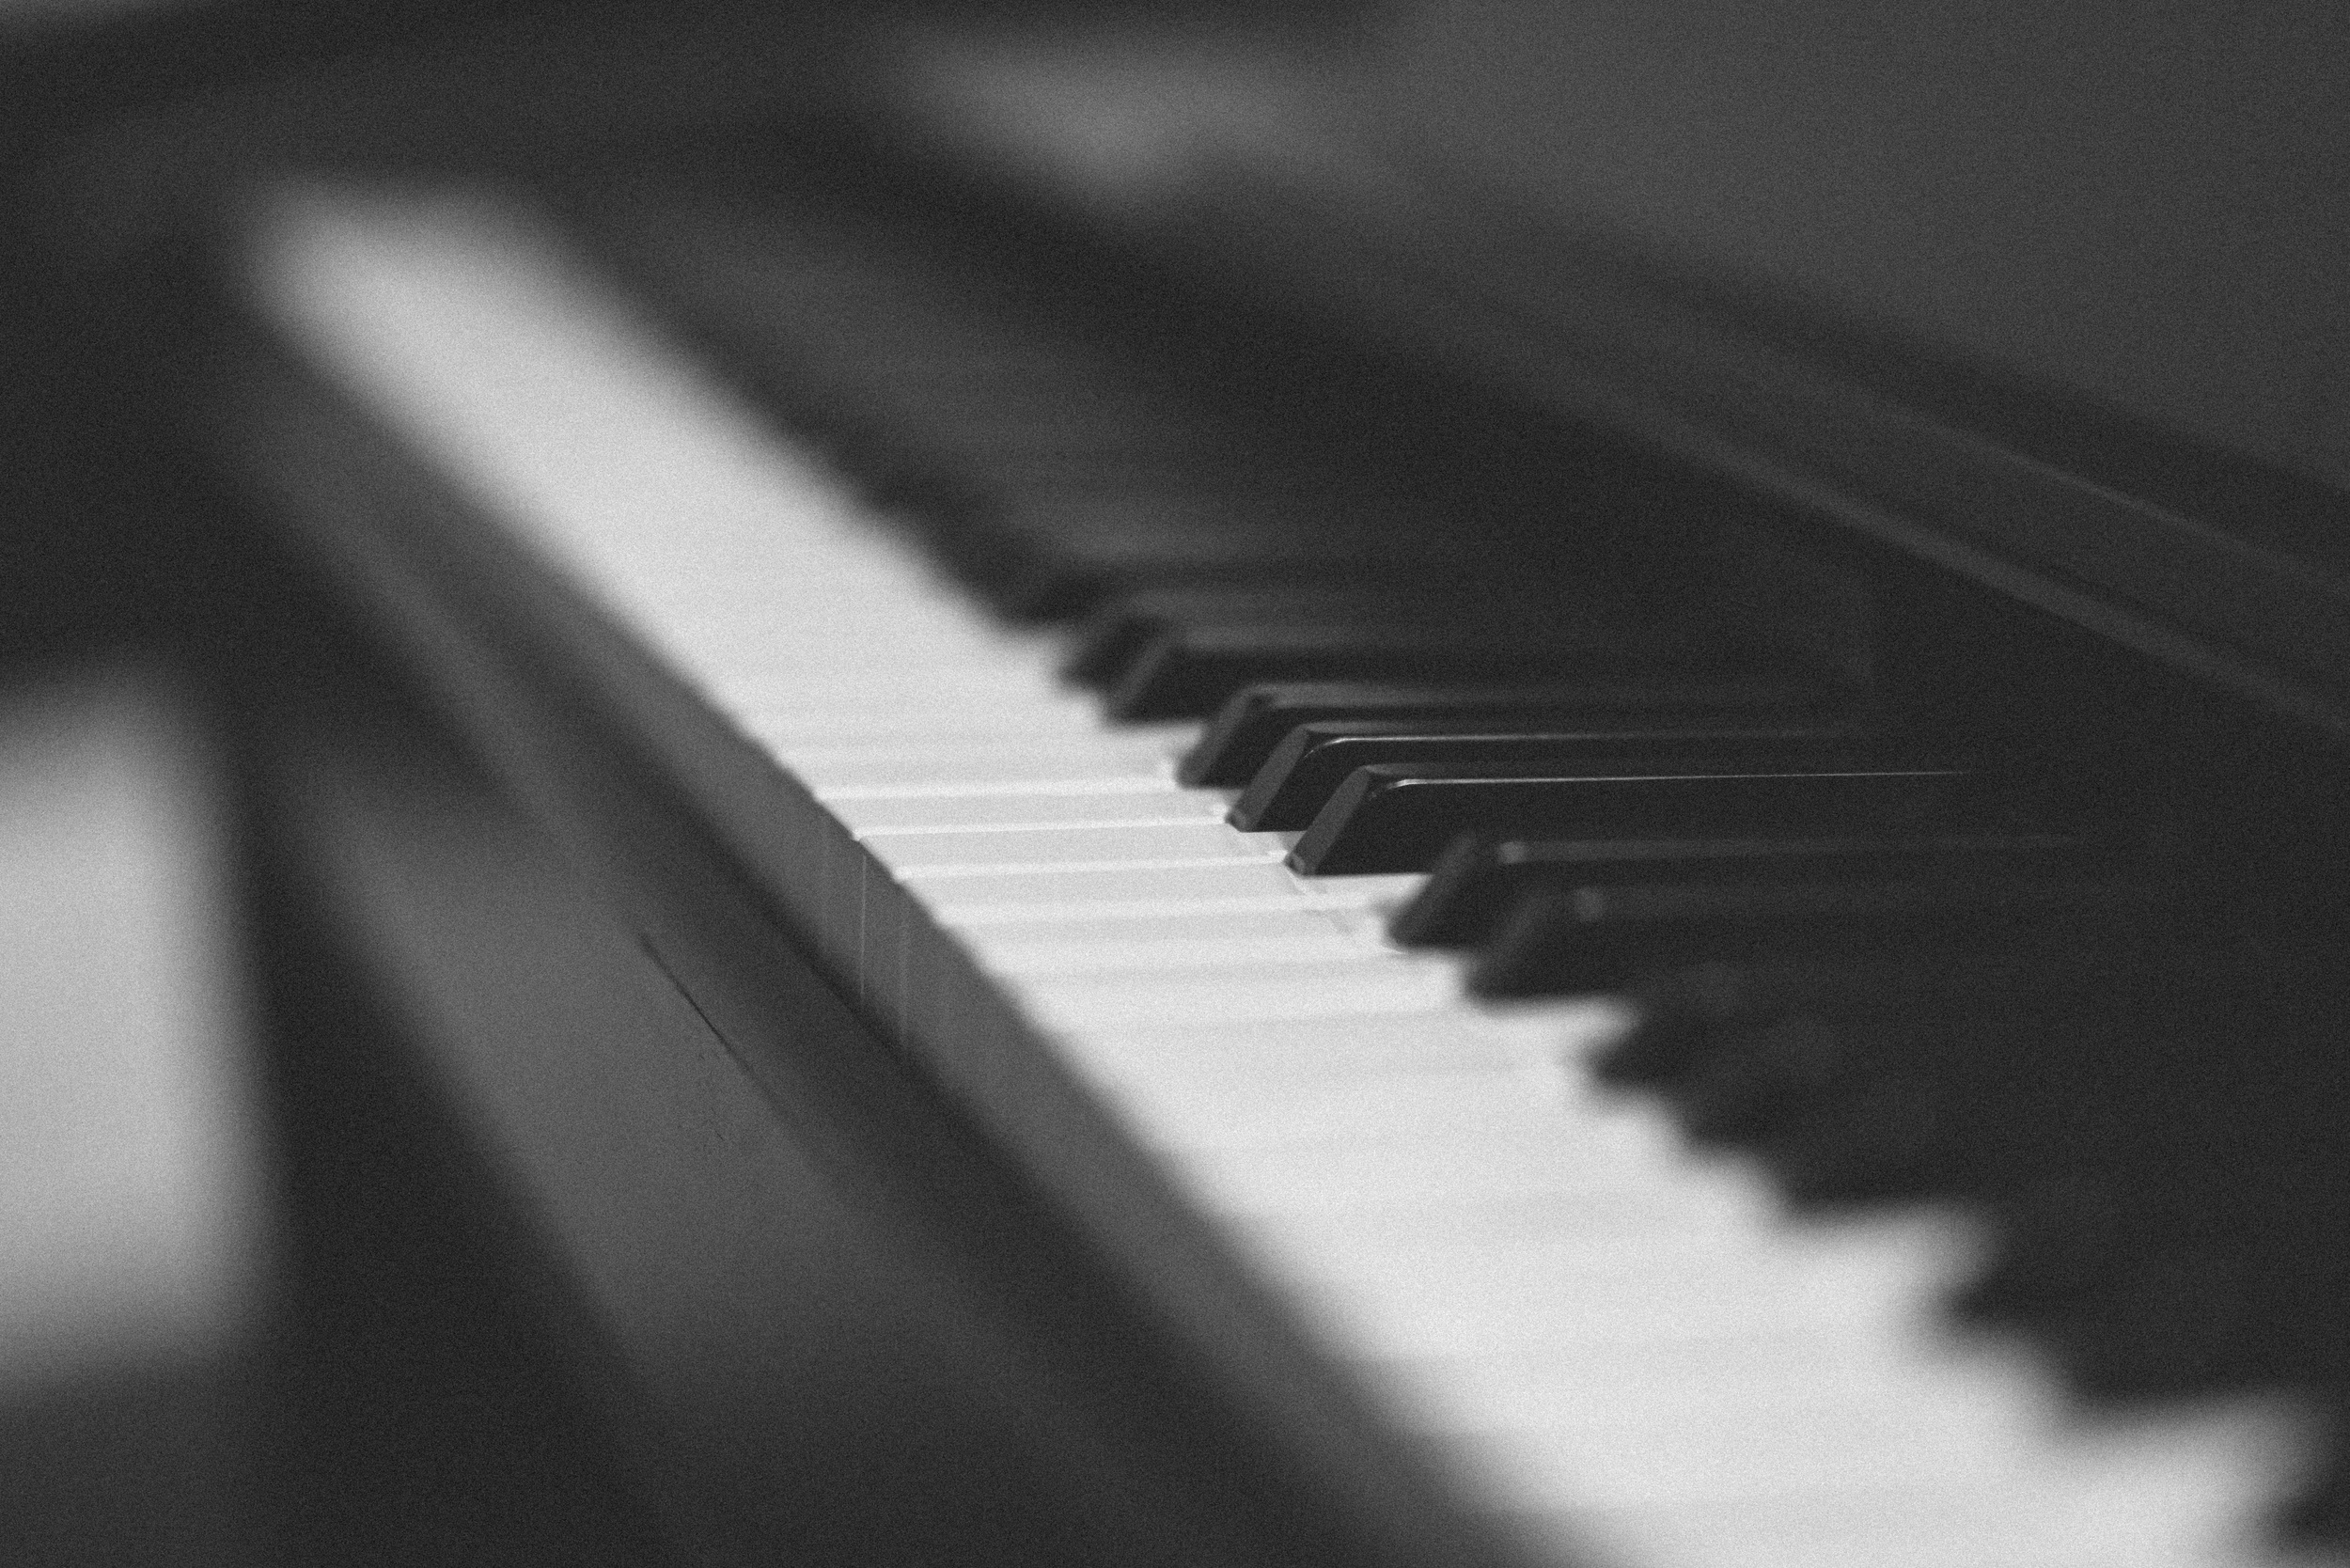 a-day-at-music-school-piano